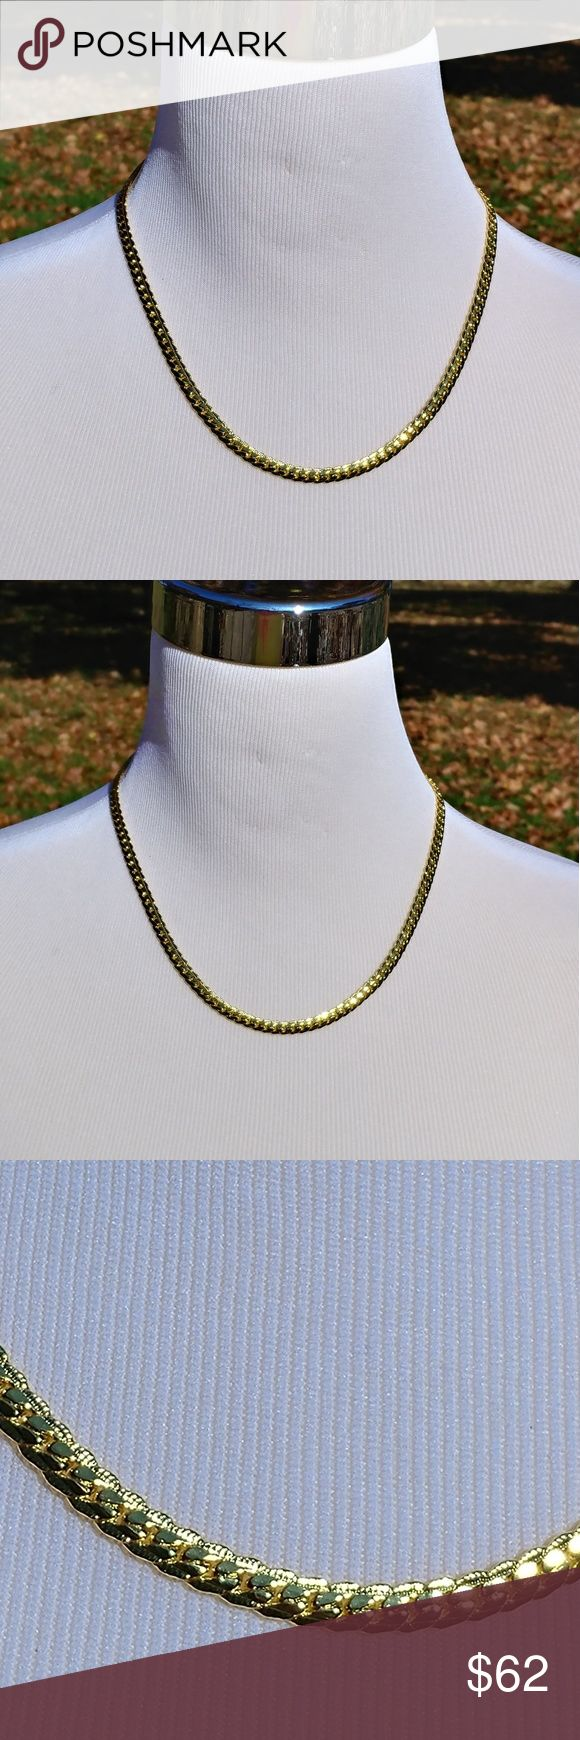 20 inch 18K gold plated necklace Gorgeous unisex 18 karat yellow gold plated snake chain necklace Accessories Jewelry